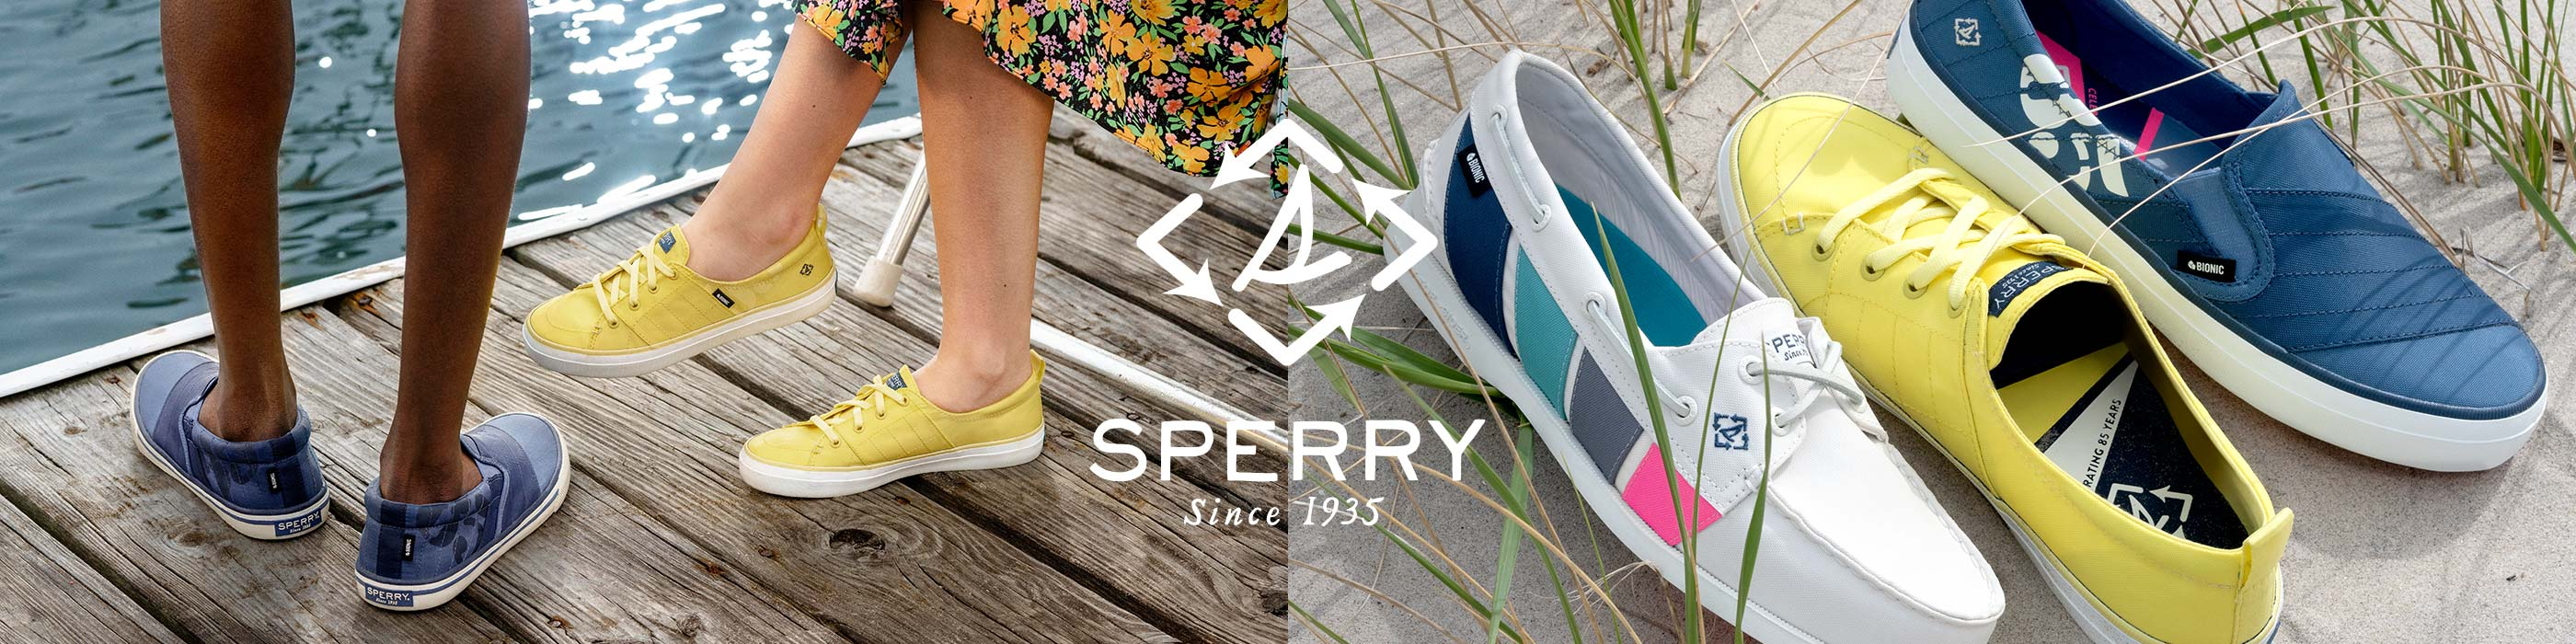 2 people wearing Sperry Bionic shoes on a deck by the beach